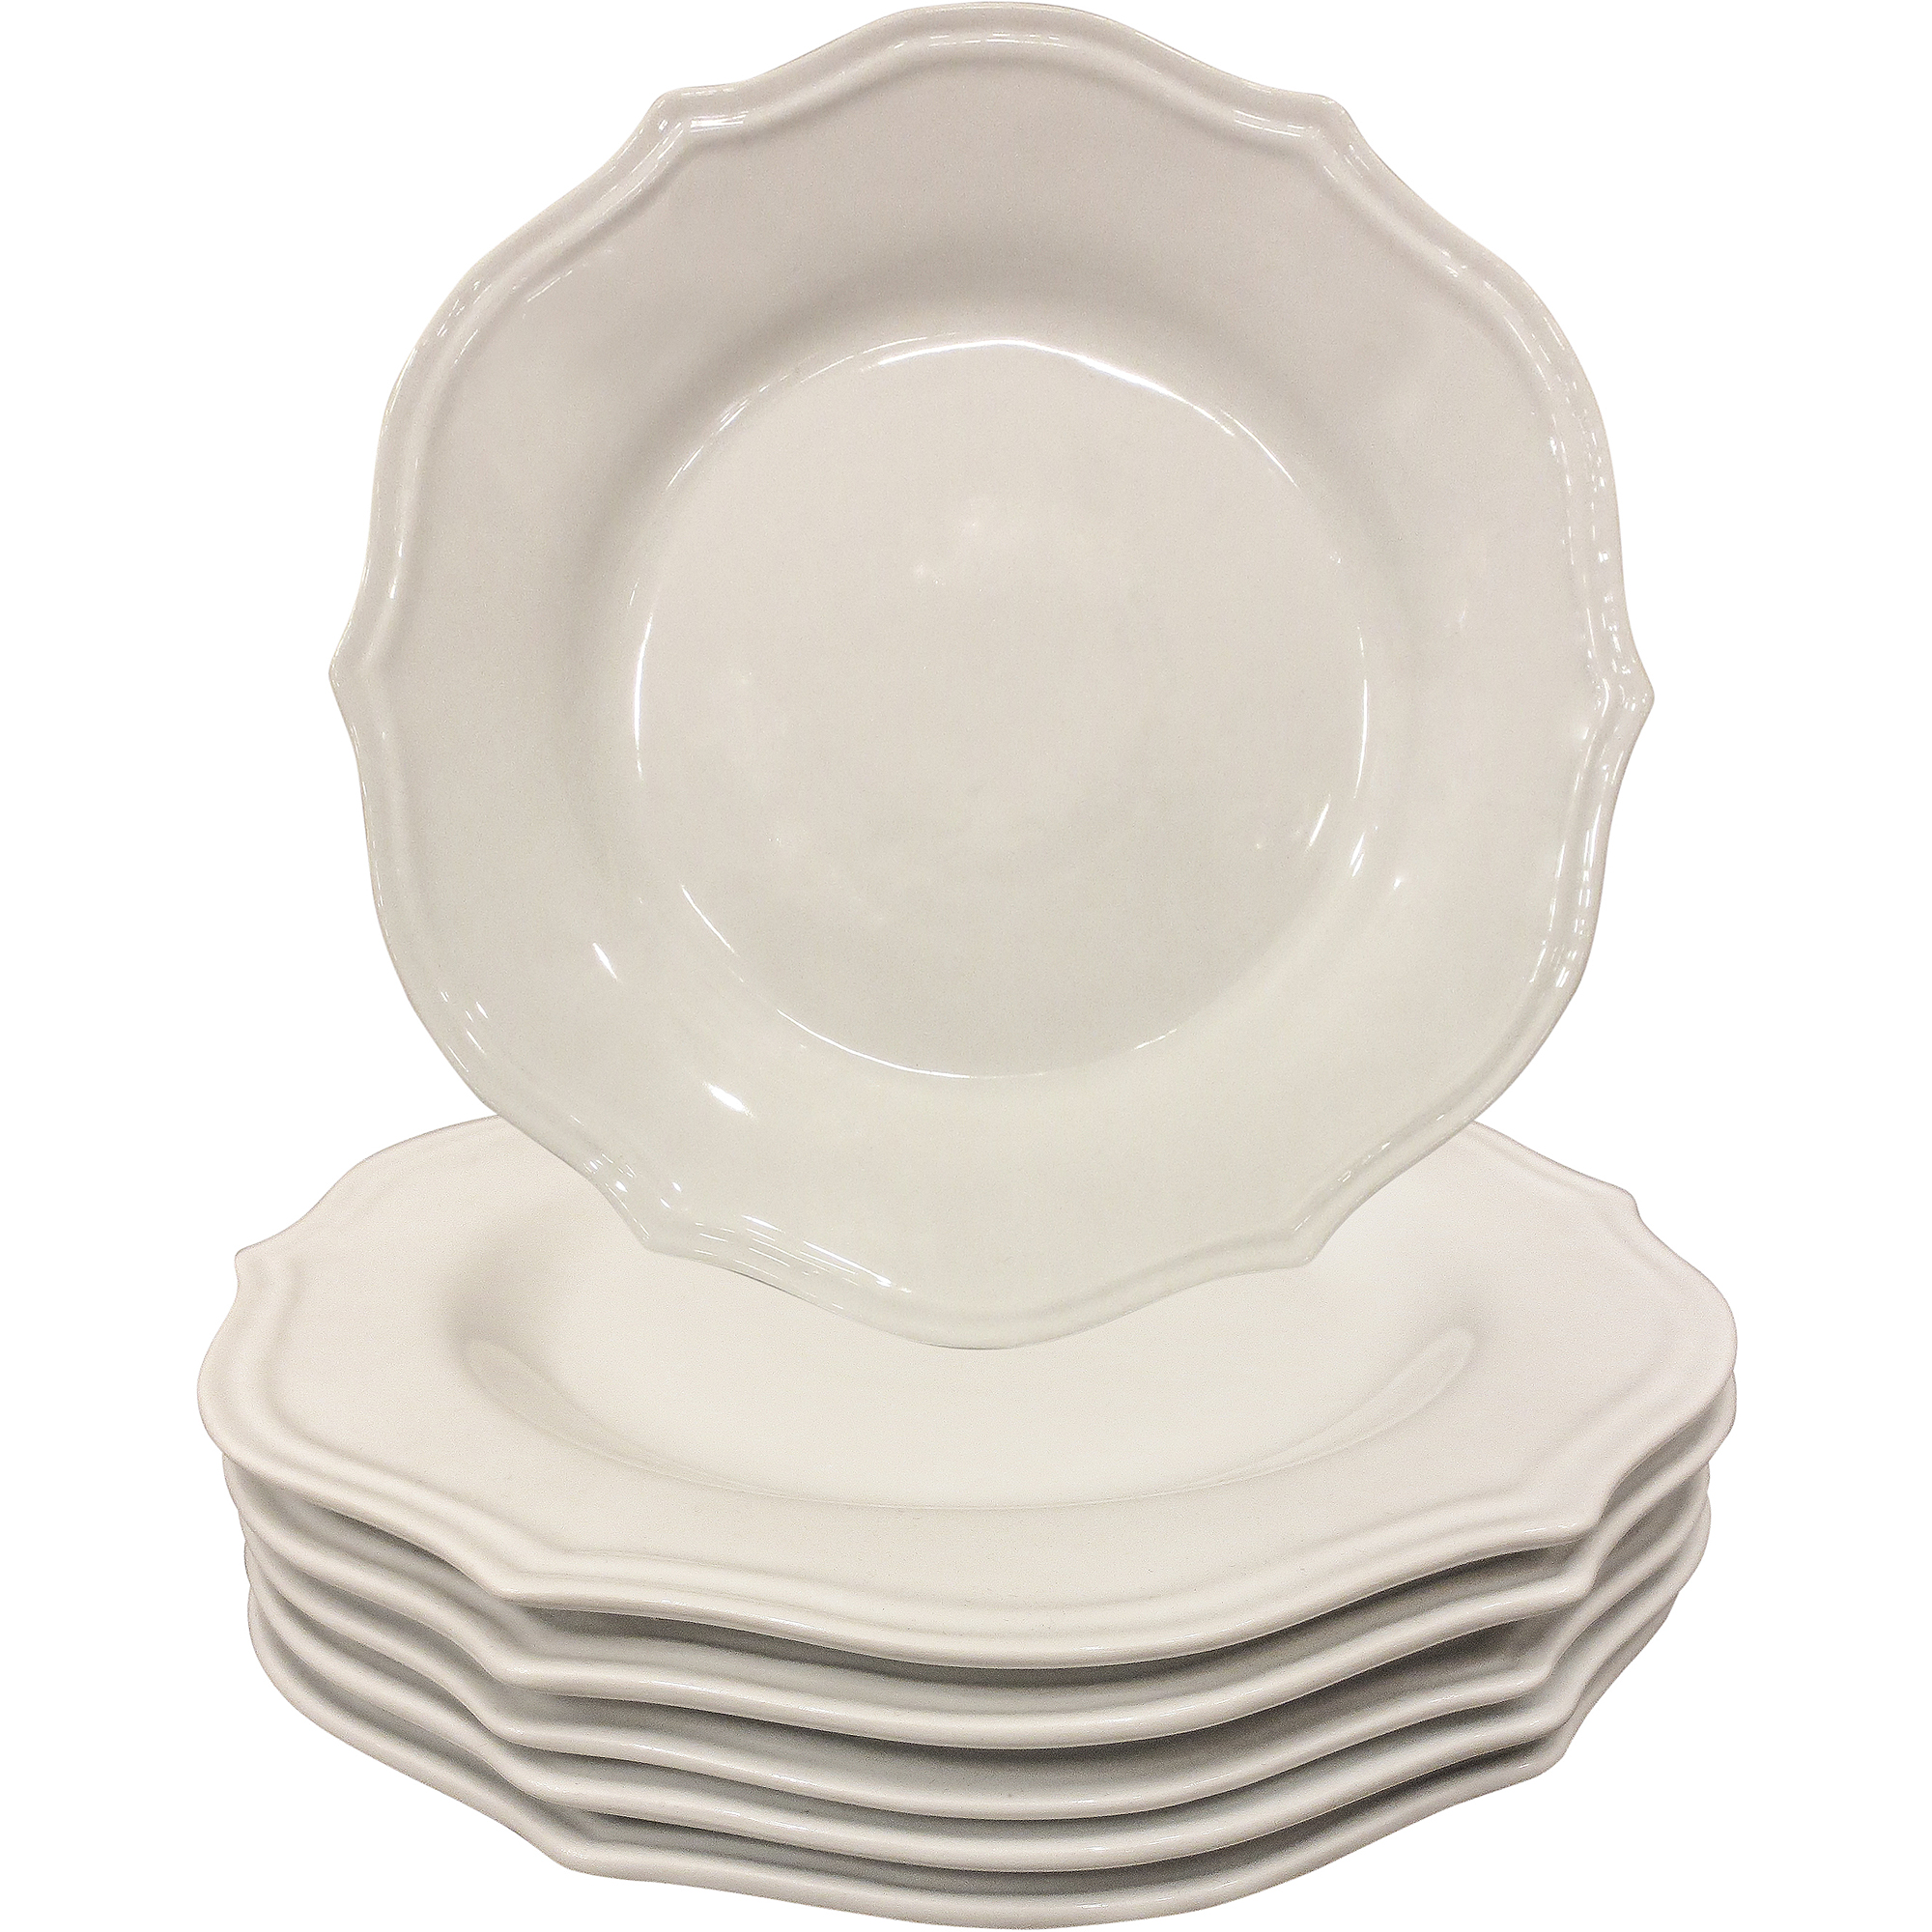 Better Homes and Gardens Scalloped Dinner Plates White Set of 6 - Walmart .com  sc 1 st  Walmart & Better Homes and Gardens Scalloped Dinner Plates White Set of 6 ...